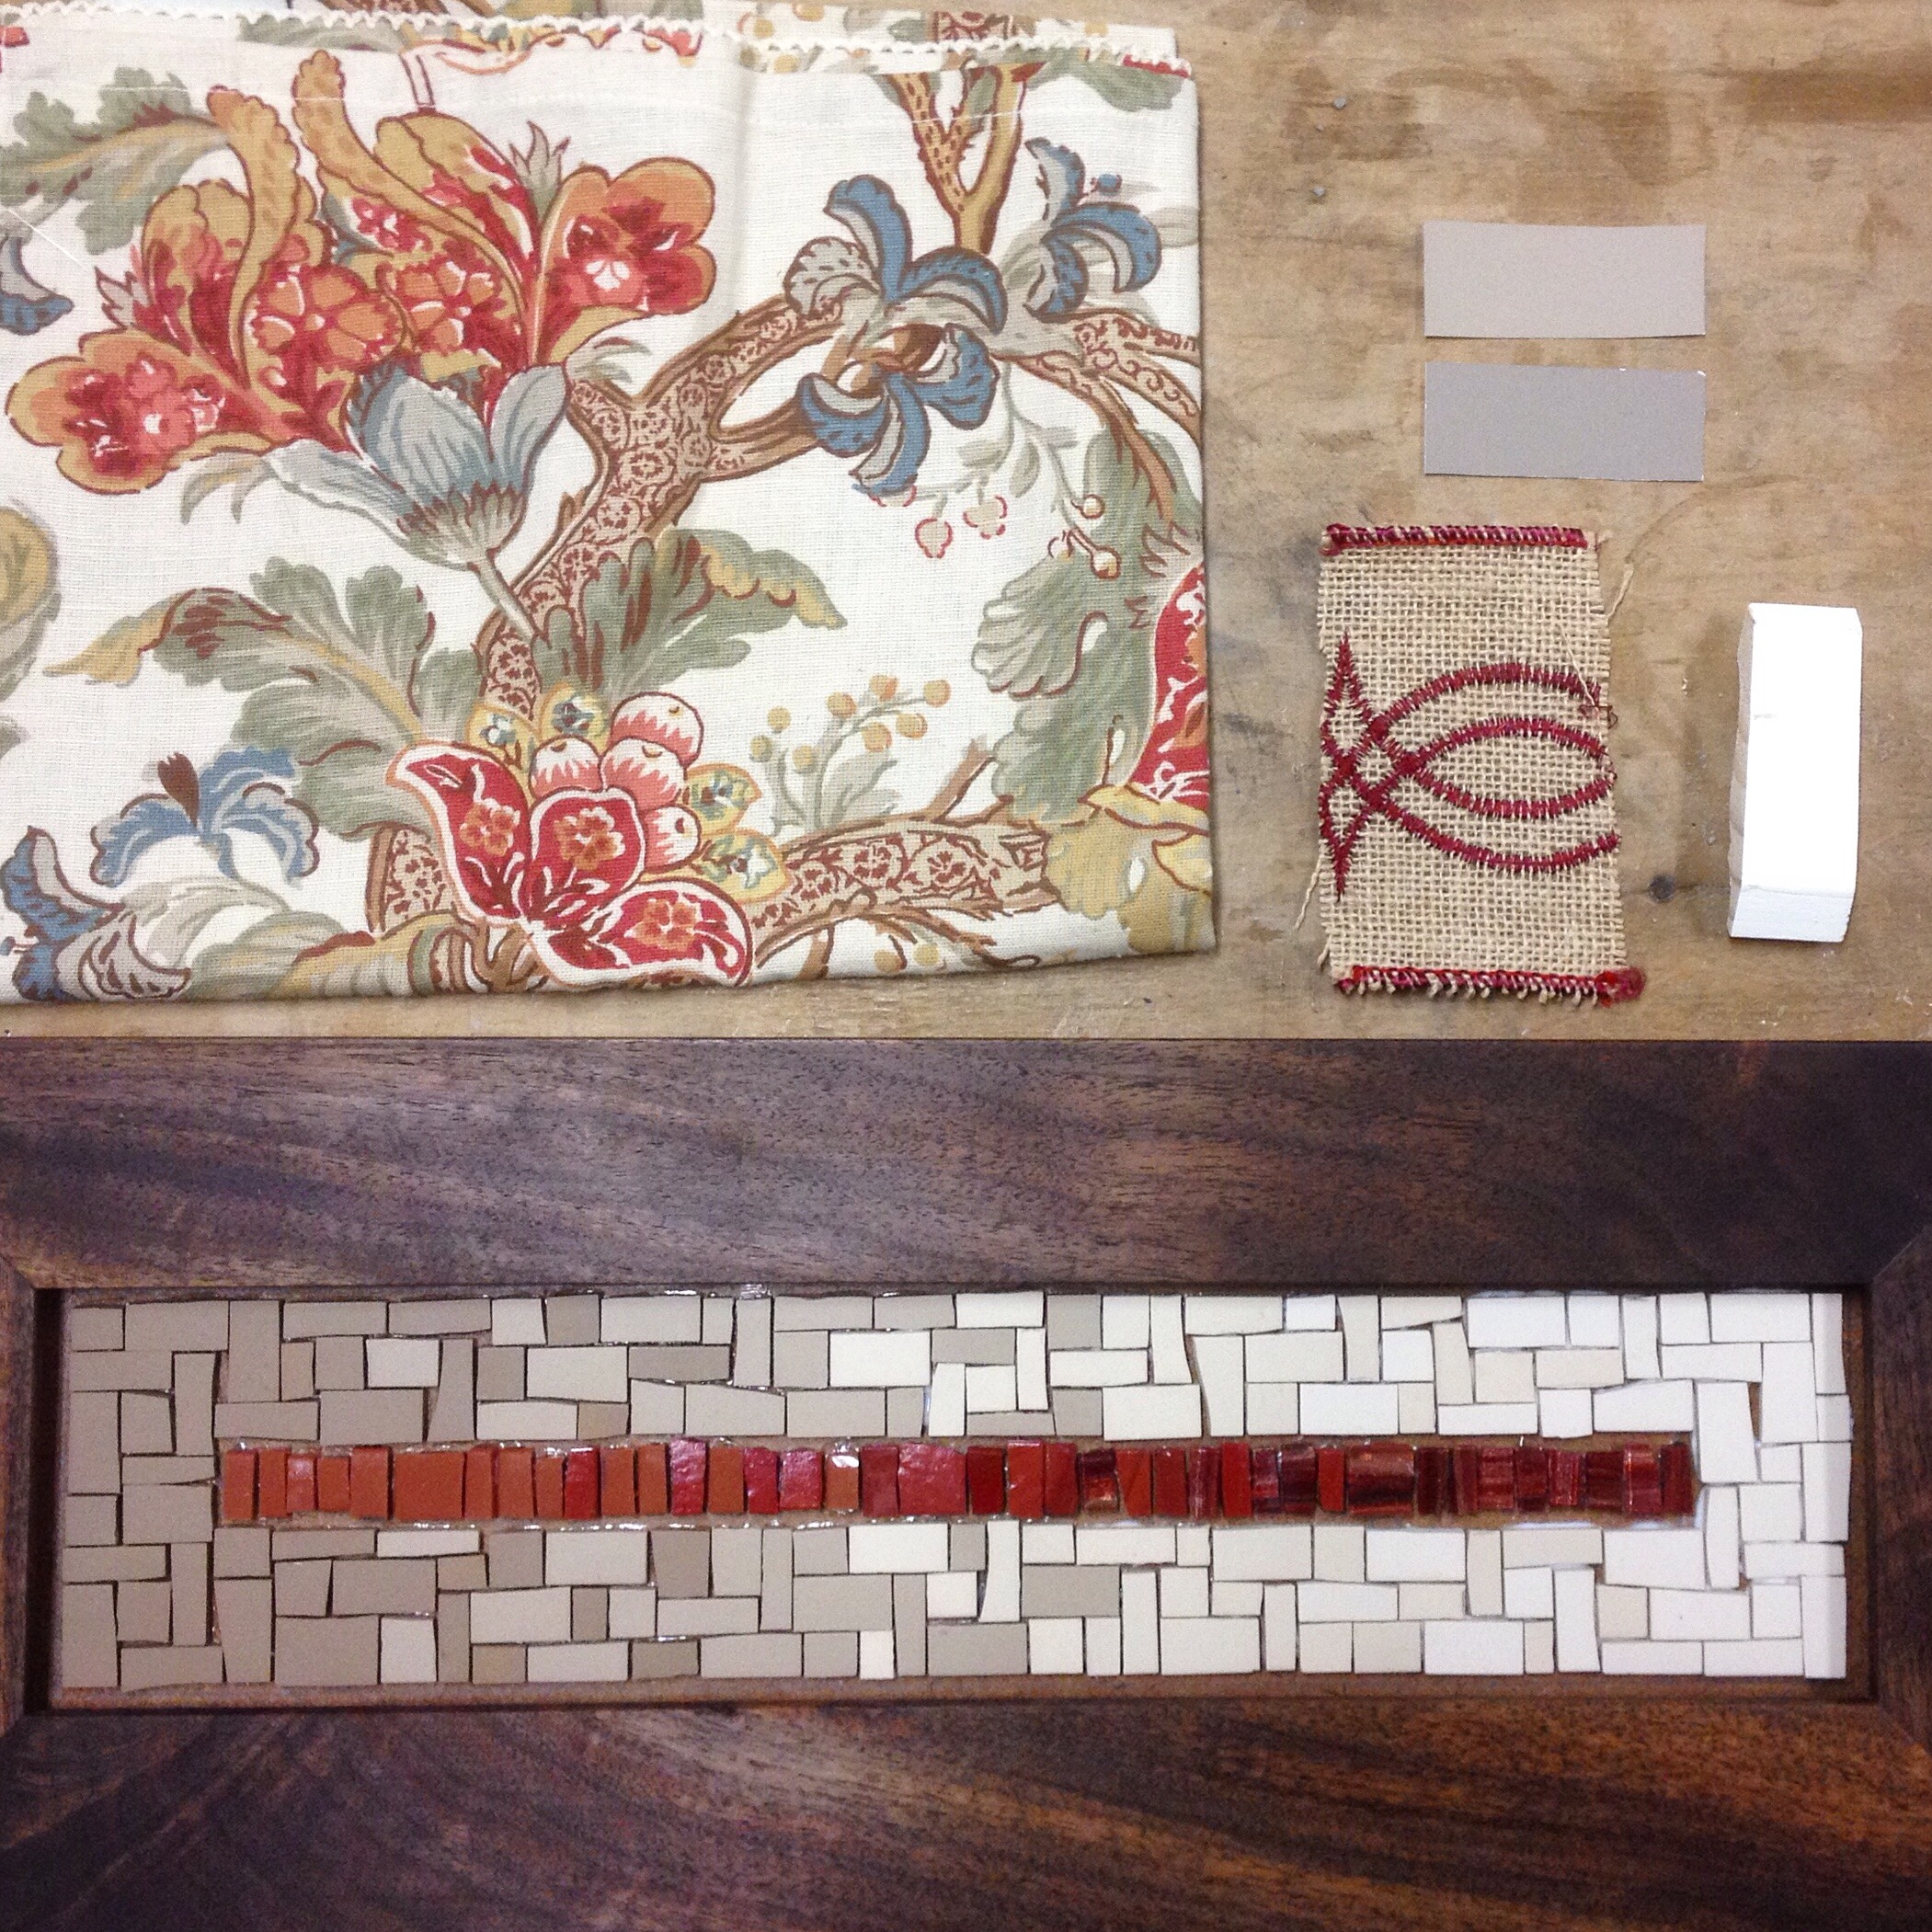 Custom mosaic coat rack with wall paper and fabric samples to aid in color selection